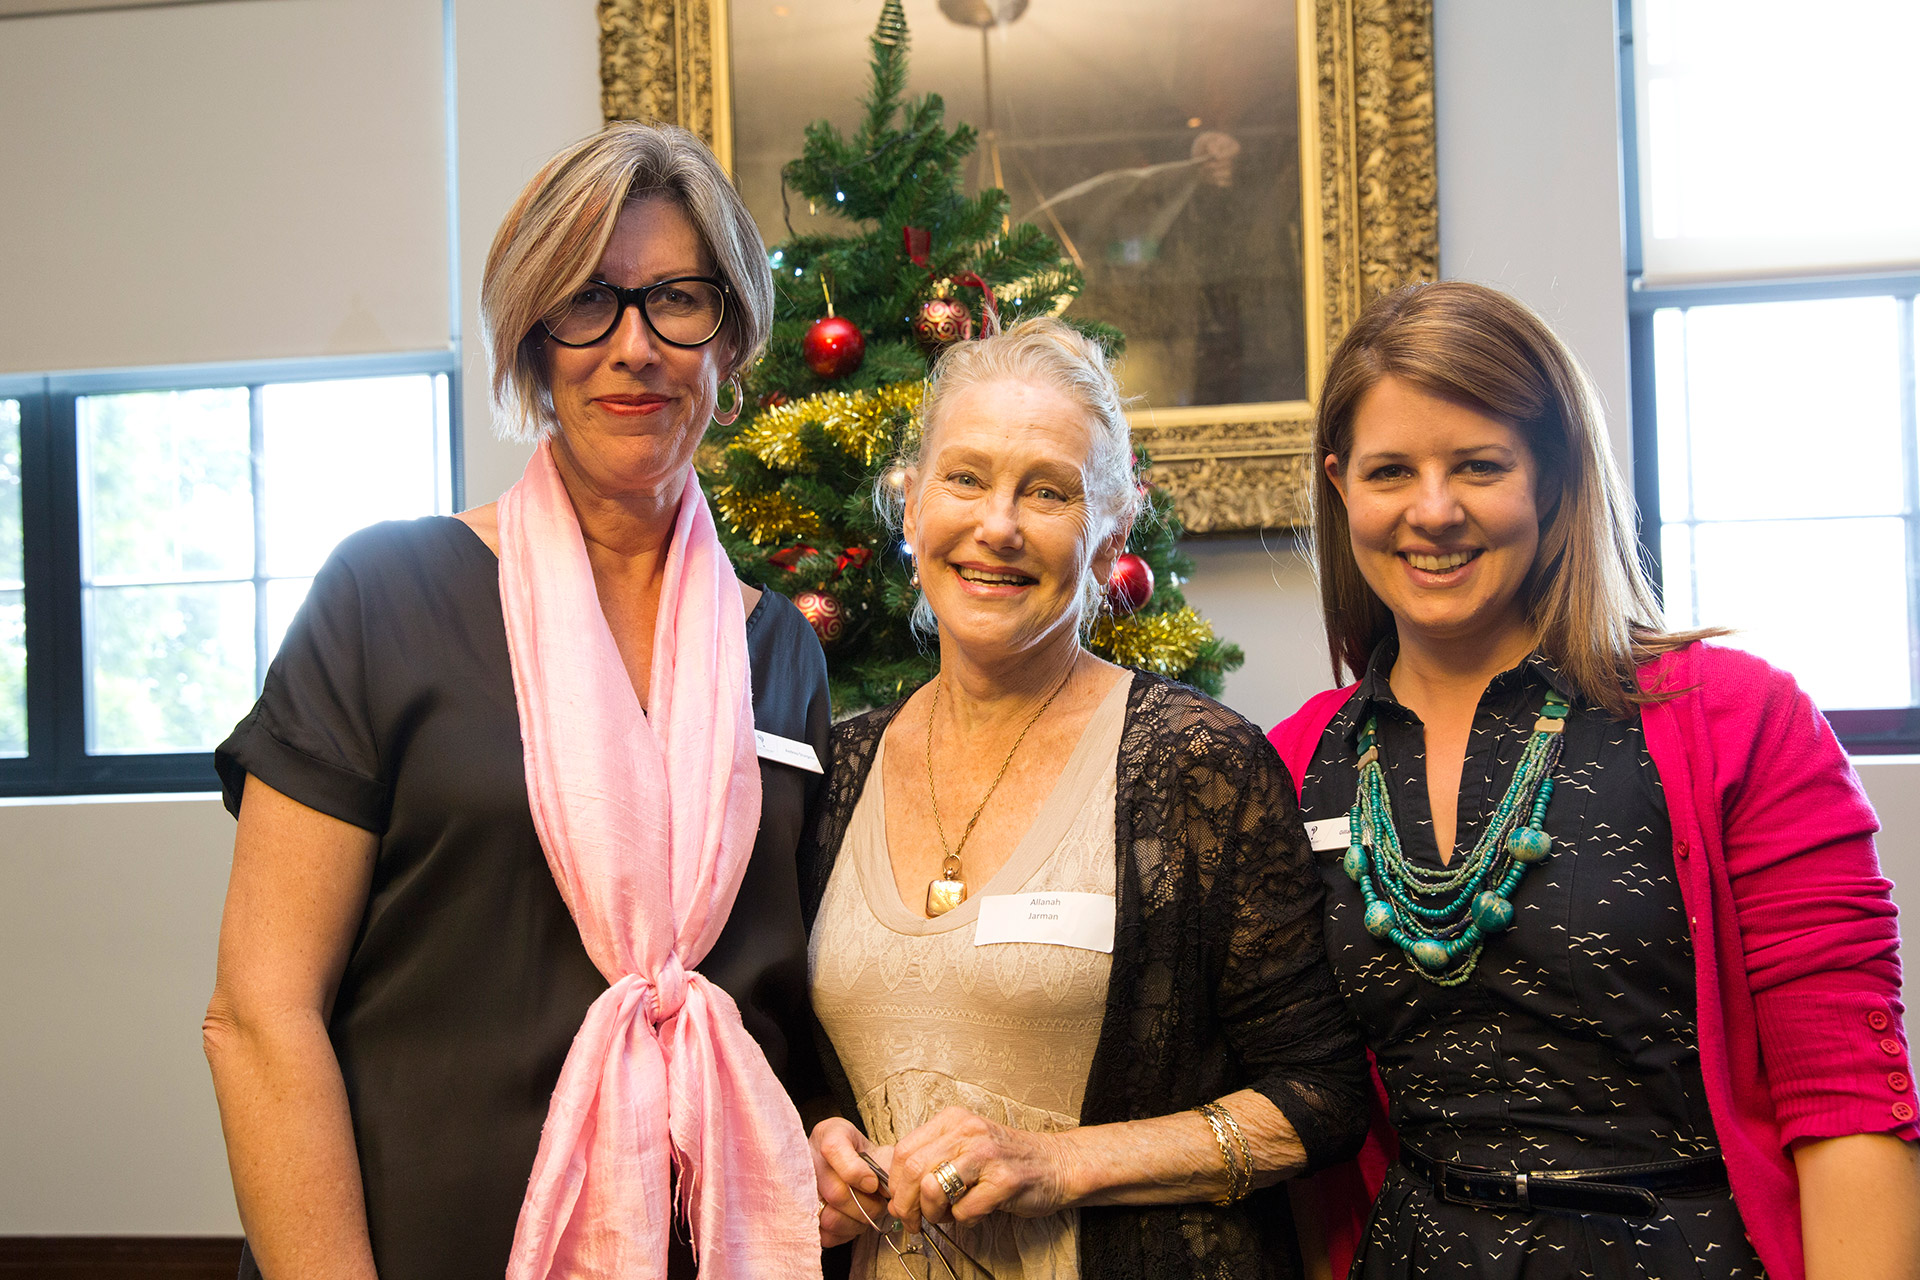 Three women with Christmas tree behind them